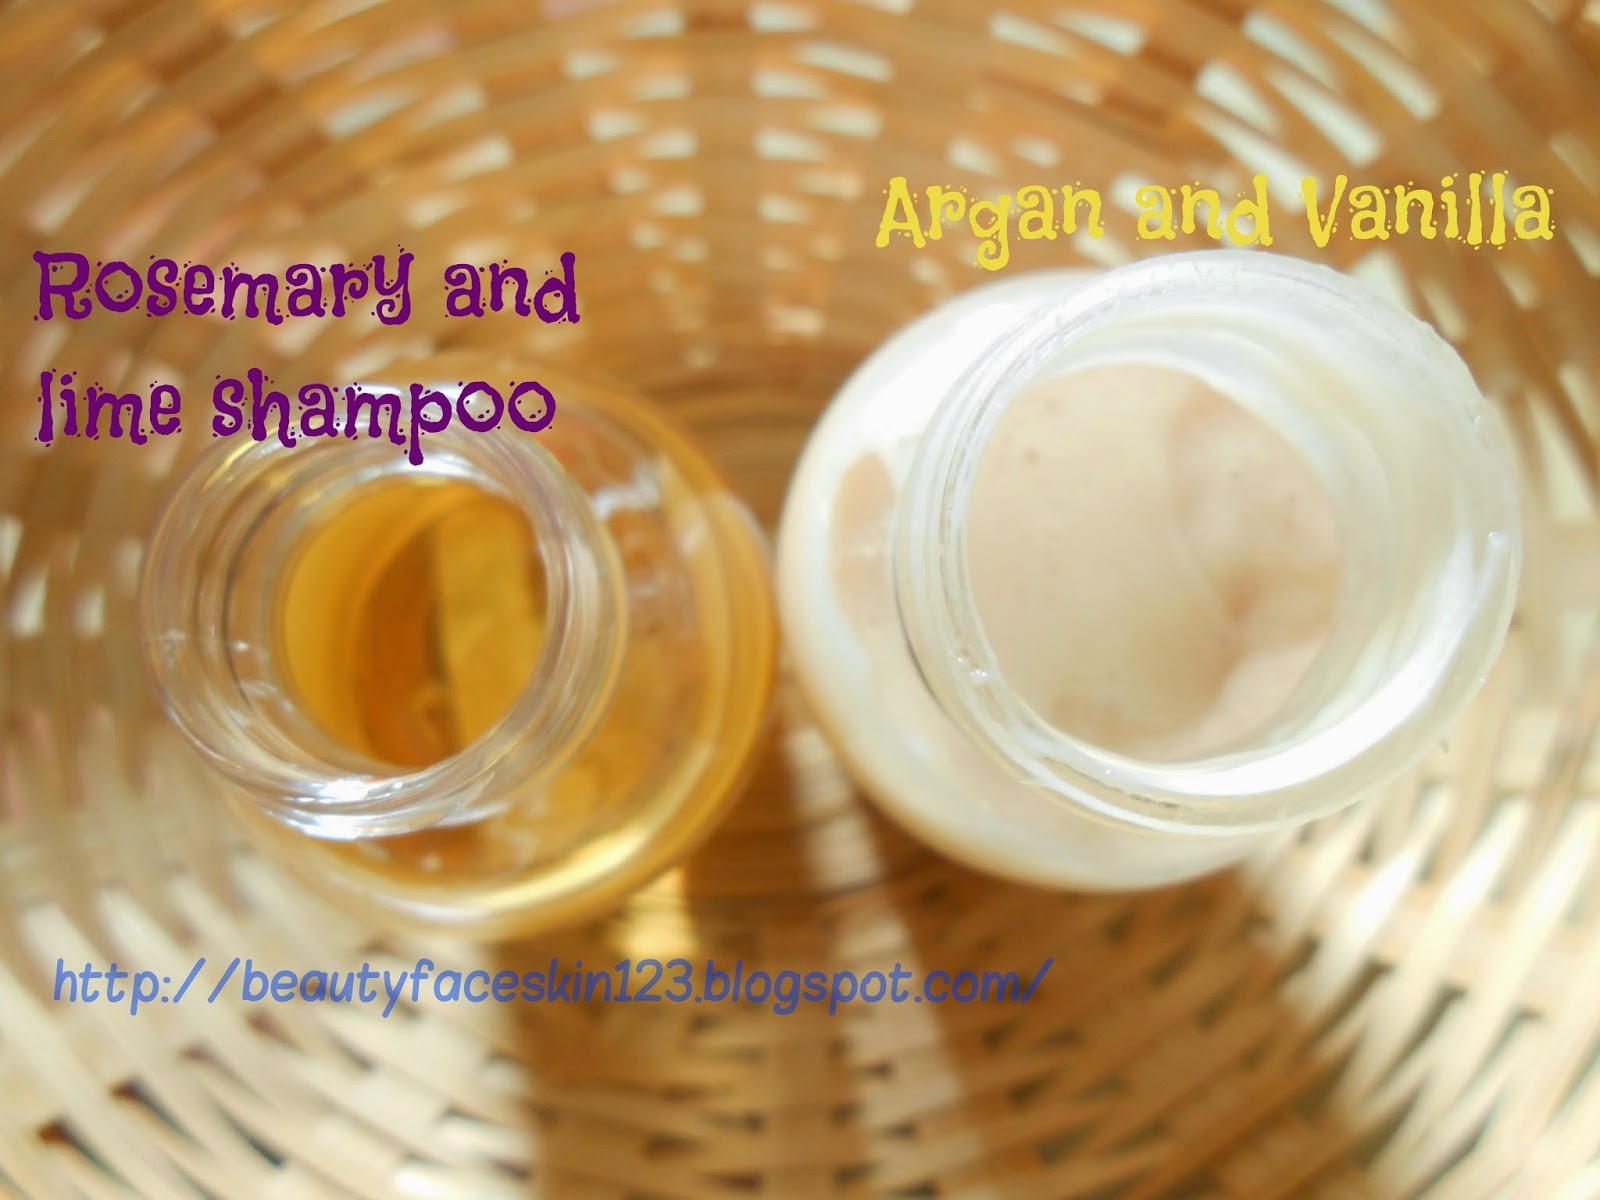 VICTORIAN GARDEN HAIR AND BATH PRODUCTS argan and vanilla hair conditioner